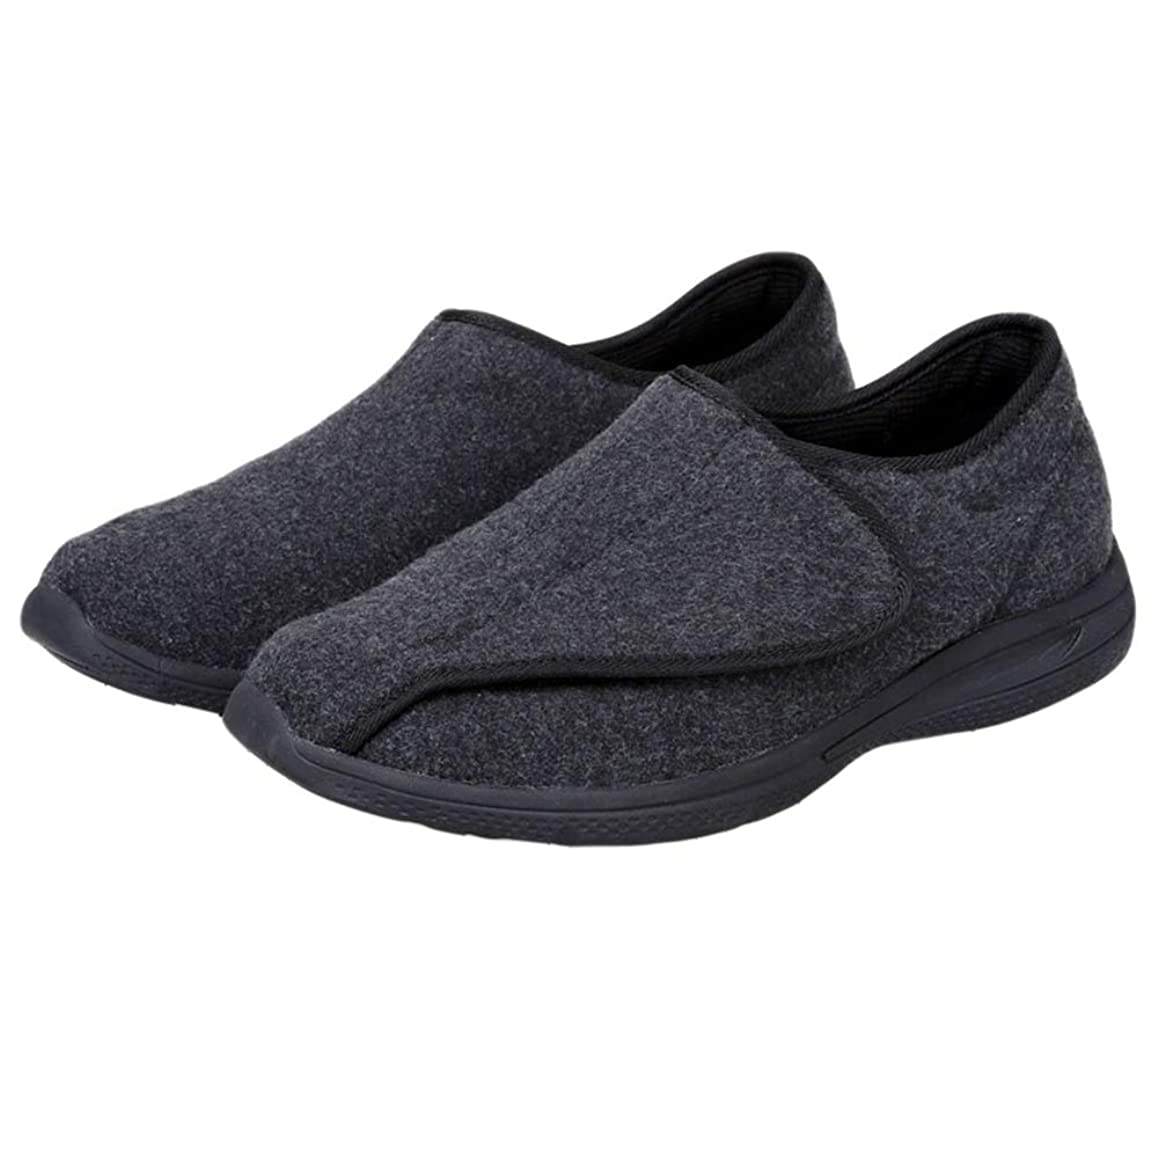 Unisex Diabetic Shoes, Extra Wide & Roomy Swollen Foot Shoes, Soft Adjustable Slippers for Sensitive Skin & Edema Feet Relief